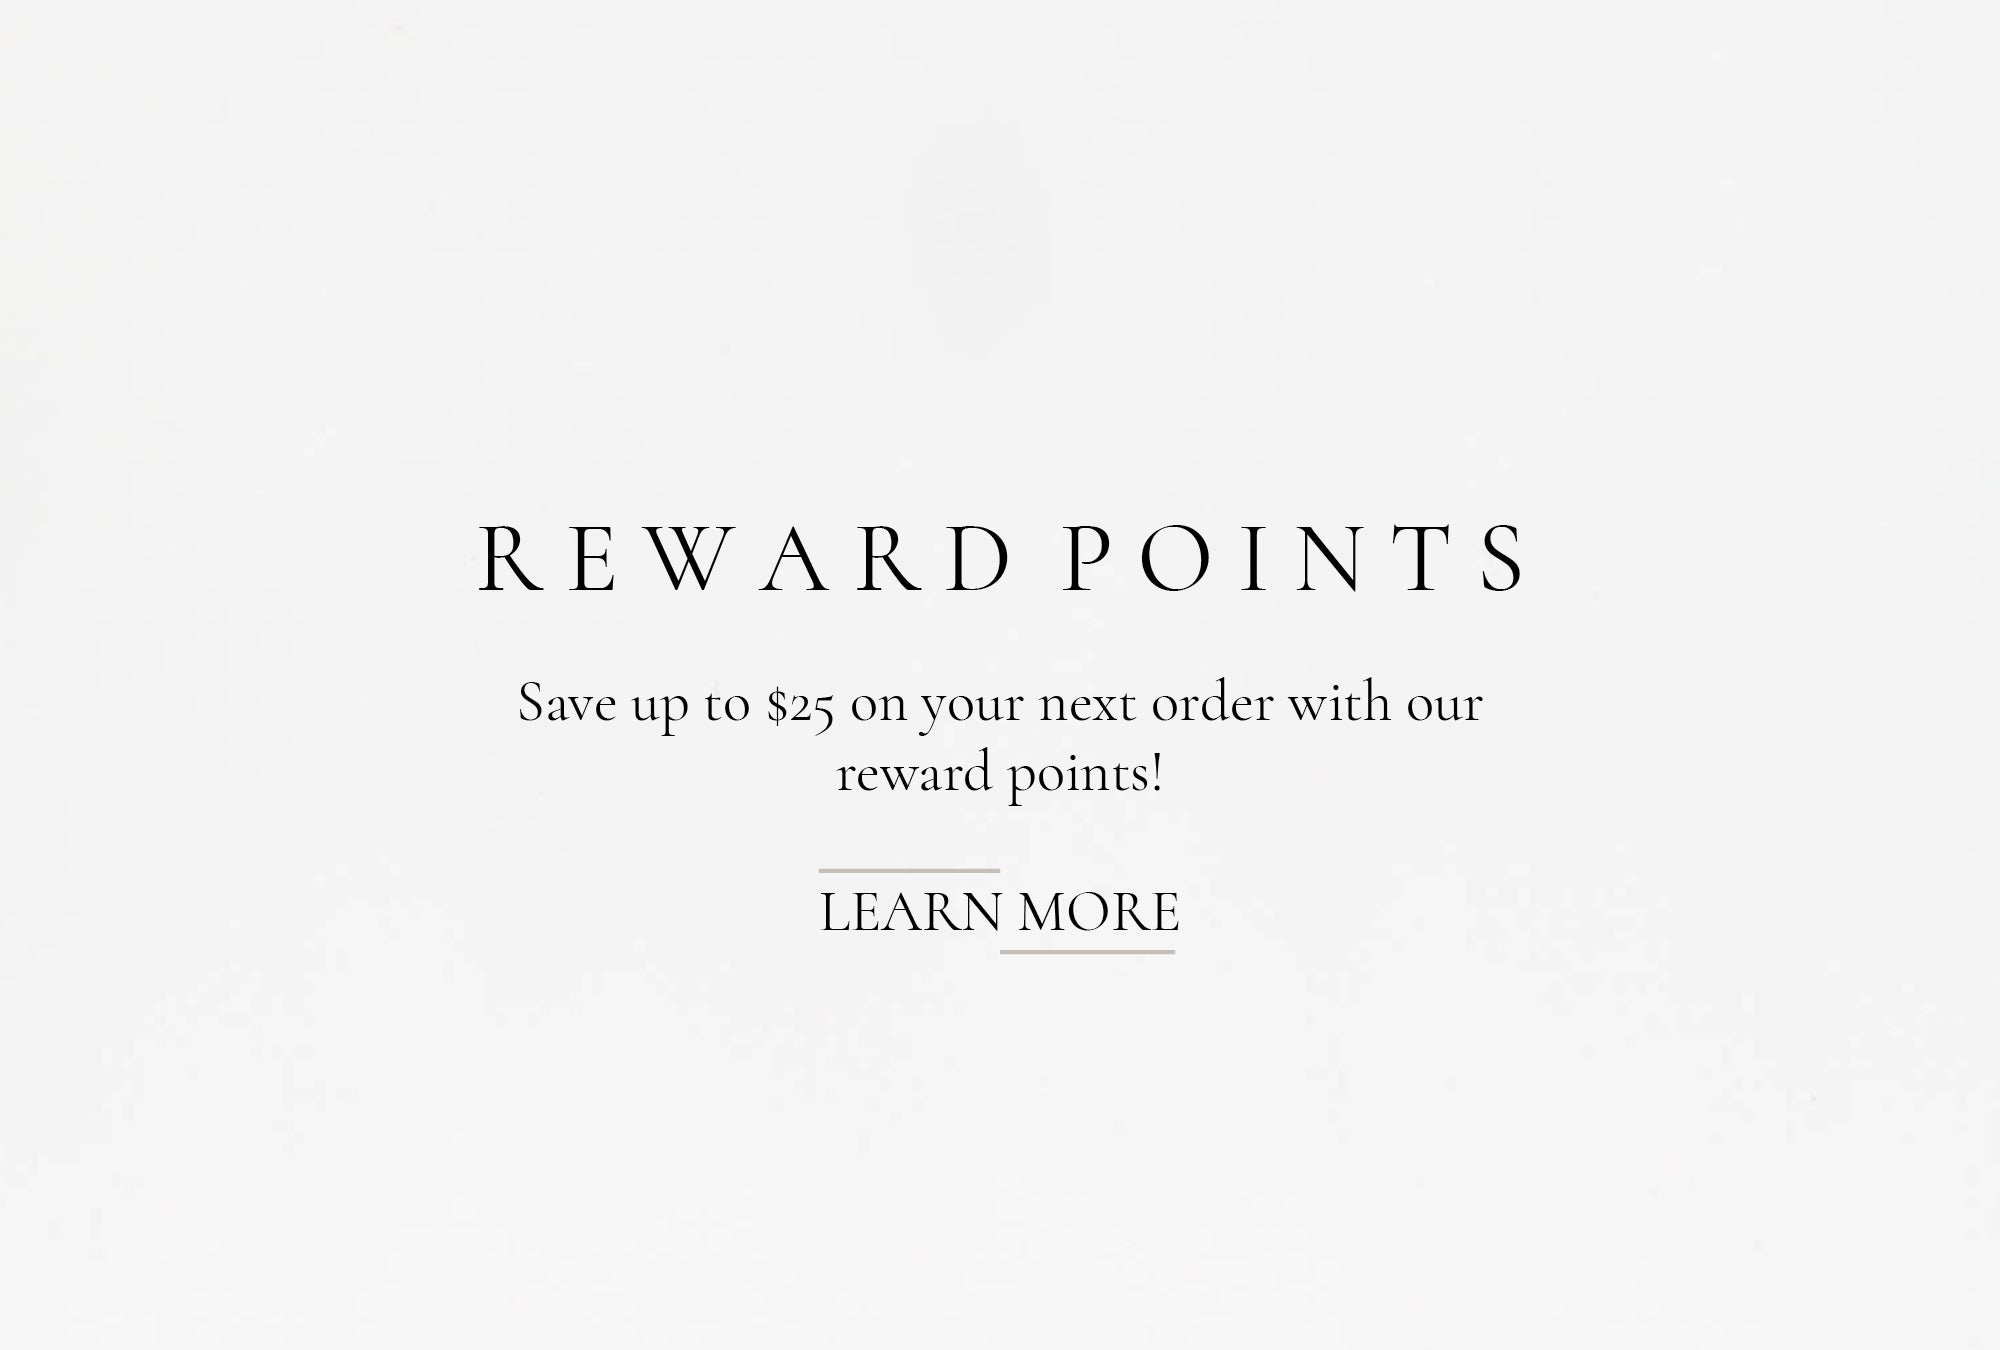 Earn rewards points